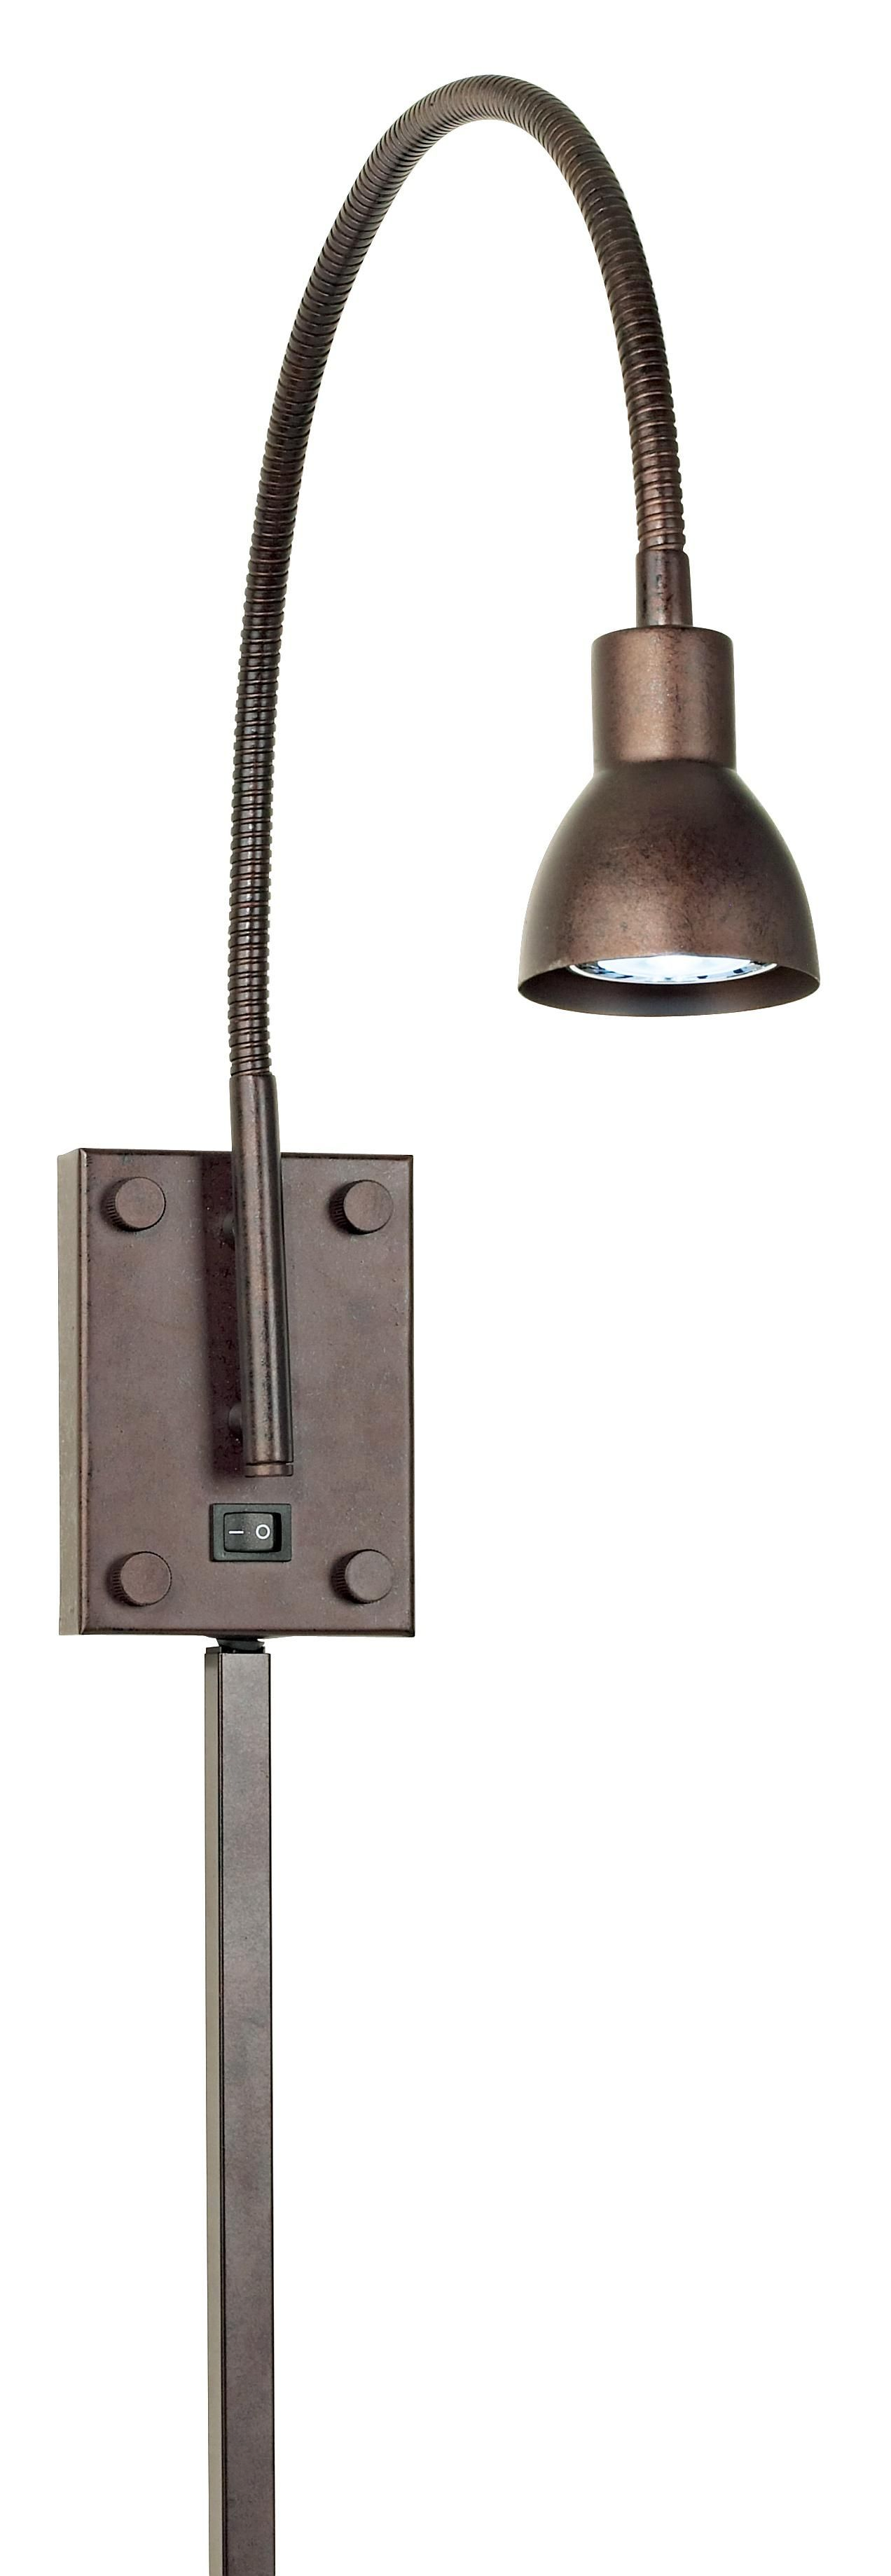 plug world accent sconces lighting in sconce do xxx glass and lamp market lamps category globe wall